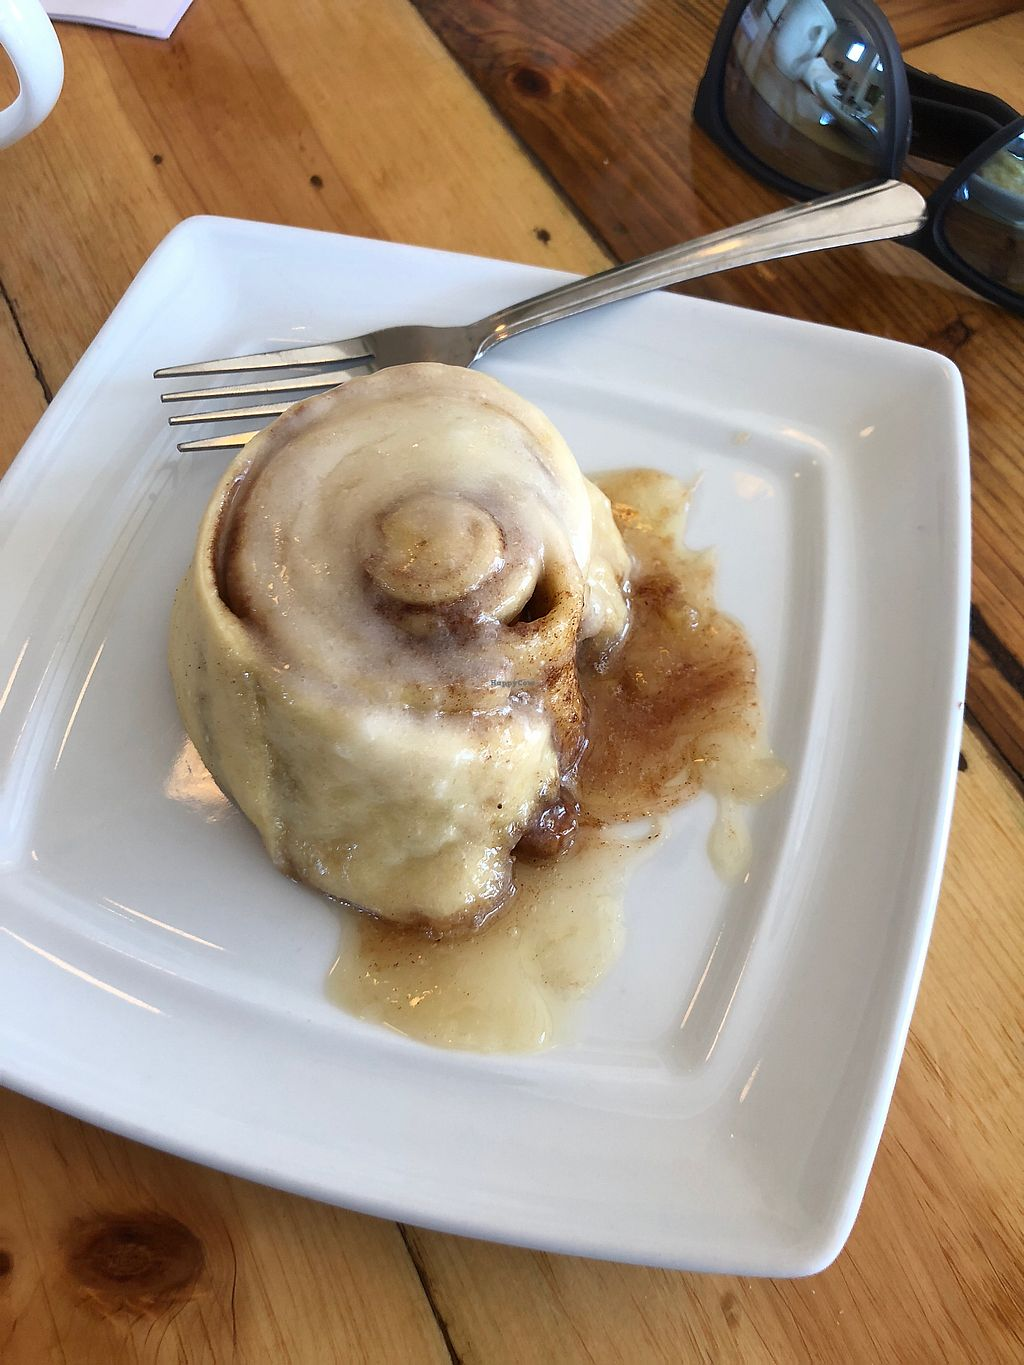 """Photo of Two Dollar Radio Headquarters  by <a href=""""/members/profile/SHA1107"""">SHA1107</a> <br/>Vegan cinnamon roll ? <br/> March 17, 2018  - <a href='/contact/abuse/image/102115/372096'>Report</a>"""